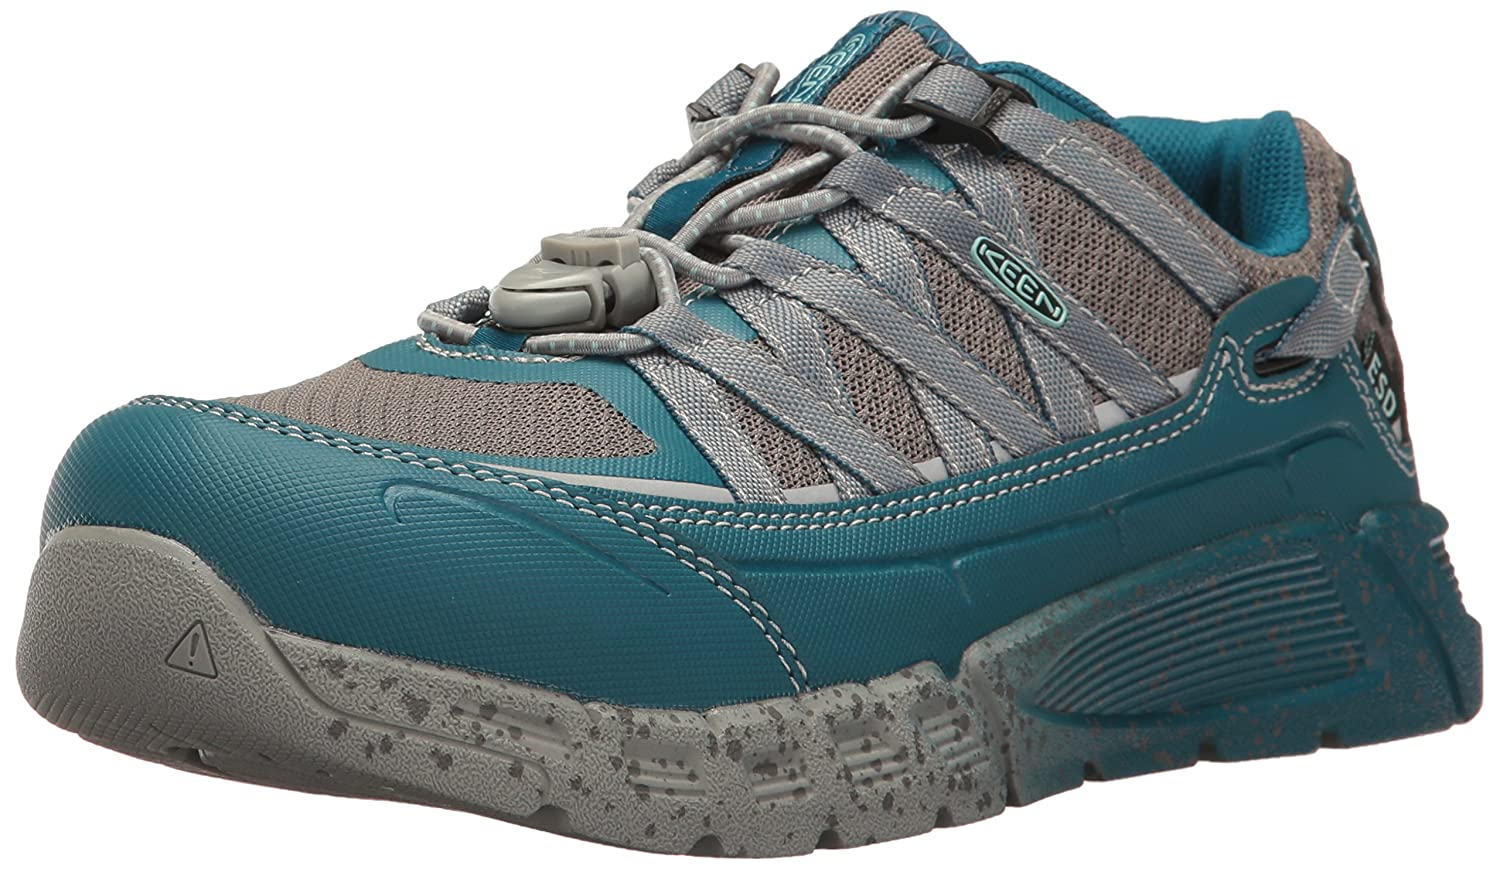 Keen UtilityレディースAsheville at ESD工業と建設Shoe Ink Blue/Eggshell Blue 10 B(M) US 10 B(M) USInk Blue/Eggshell Blue B01J28LRP2